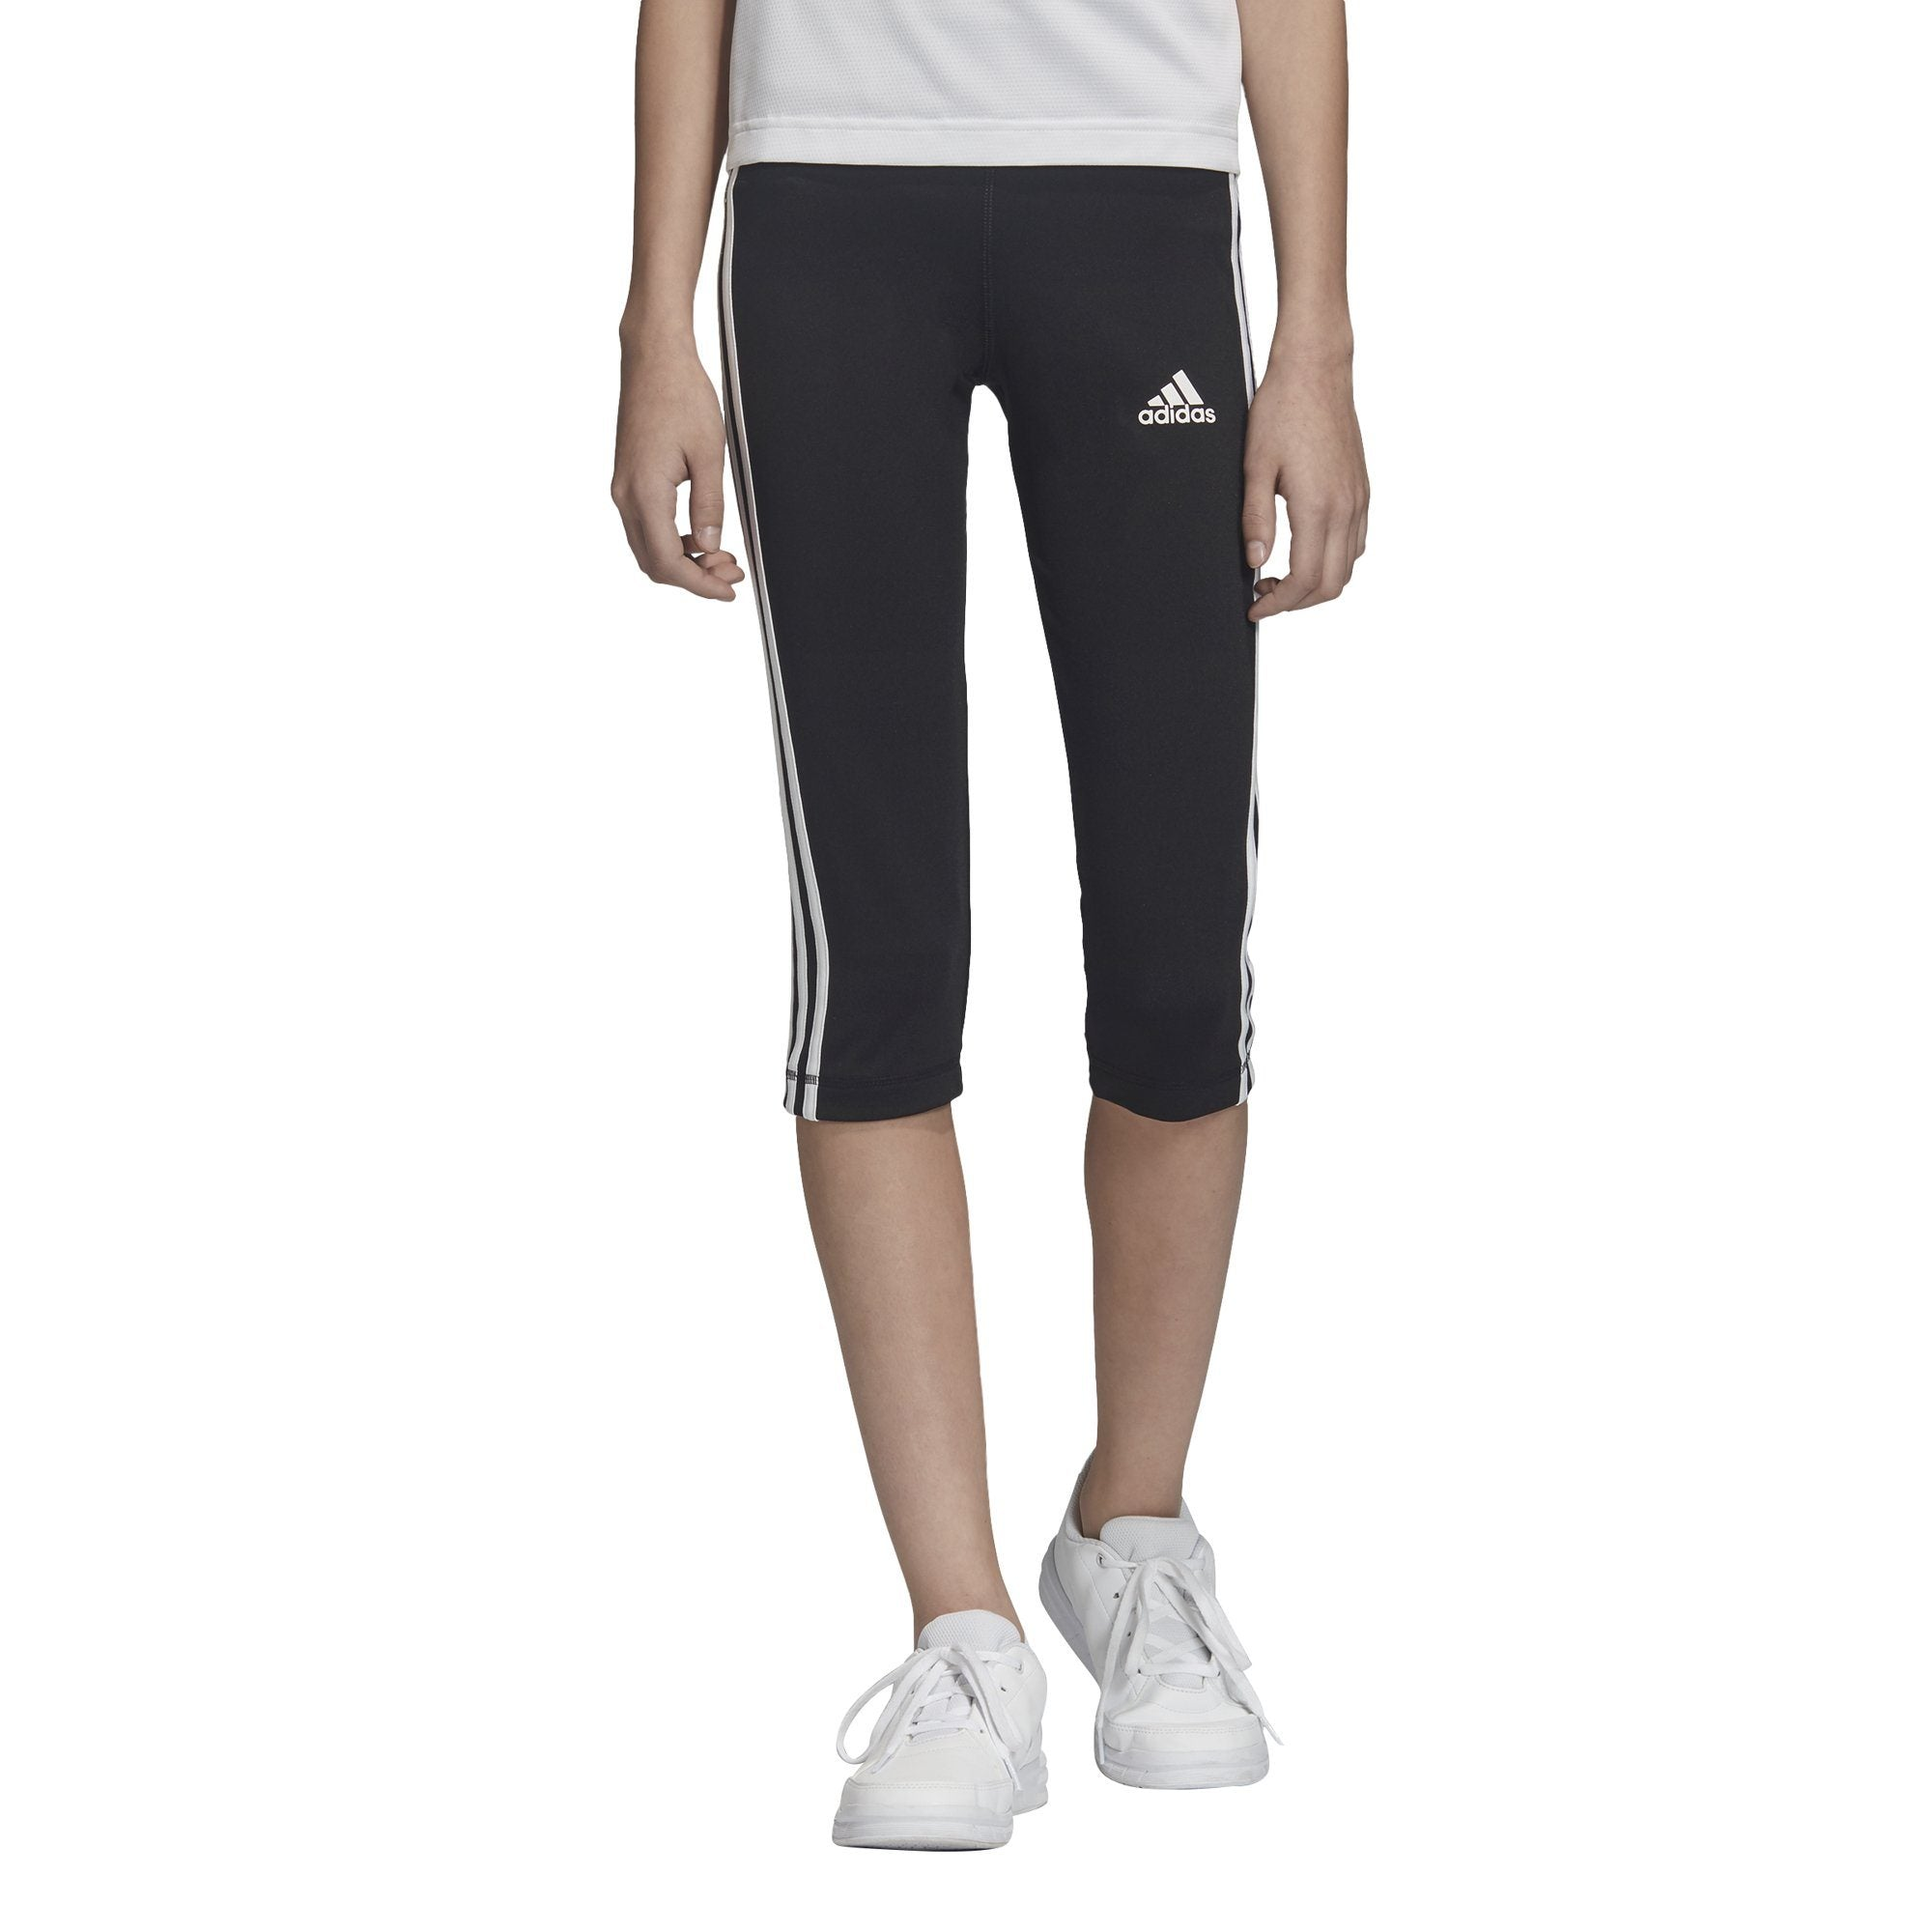 Adidas Kids Equipment 3-Stripes 3/4 Tights - Black/White SP-ApparelTights-Kids Adidas